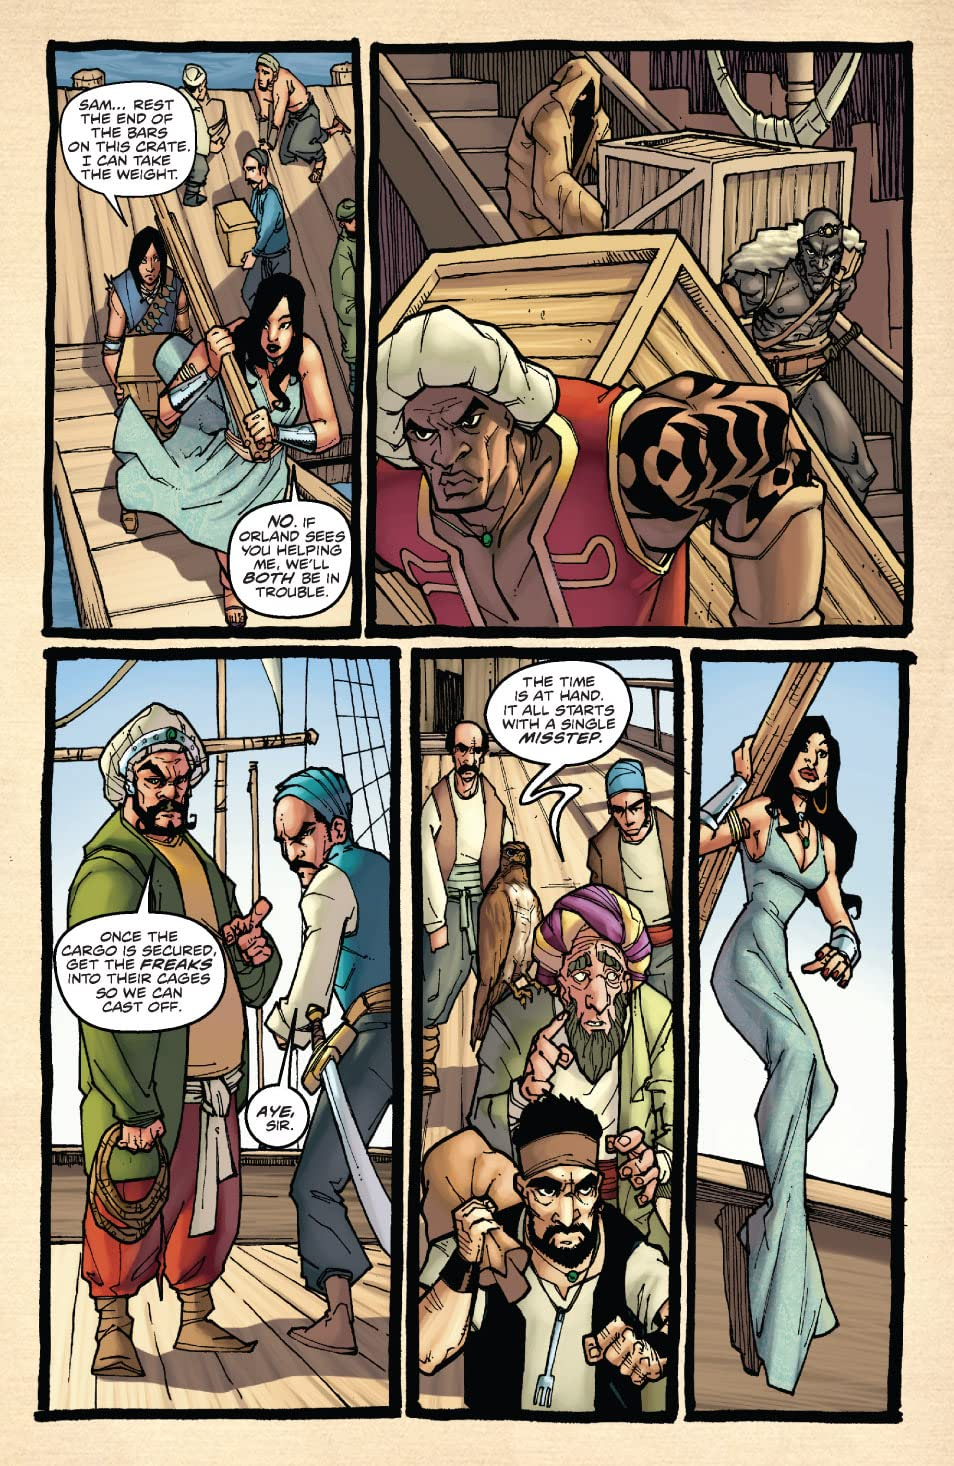 1001 Arabian Nights: The Adventures of Sinbad #0